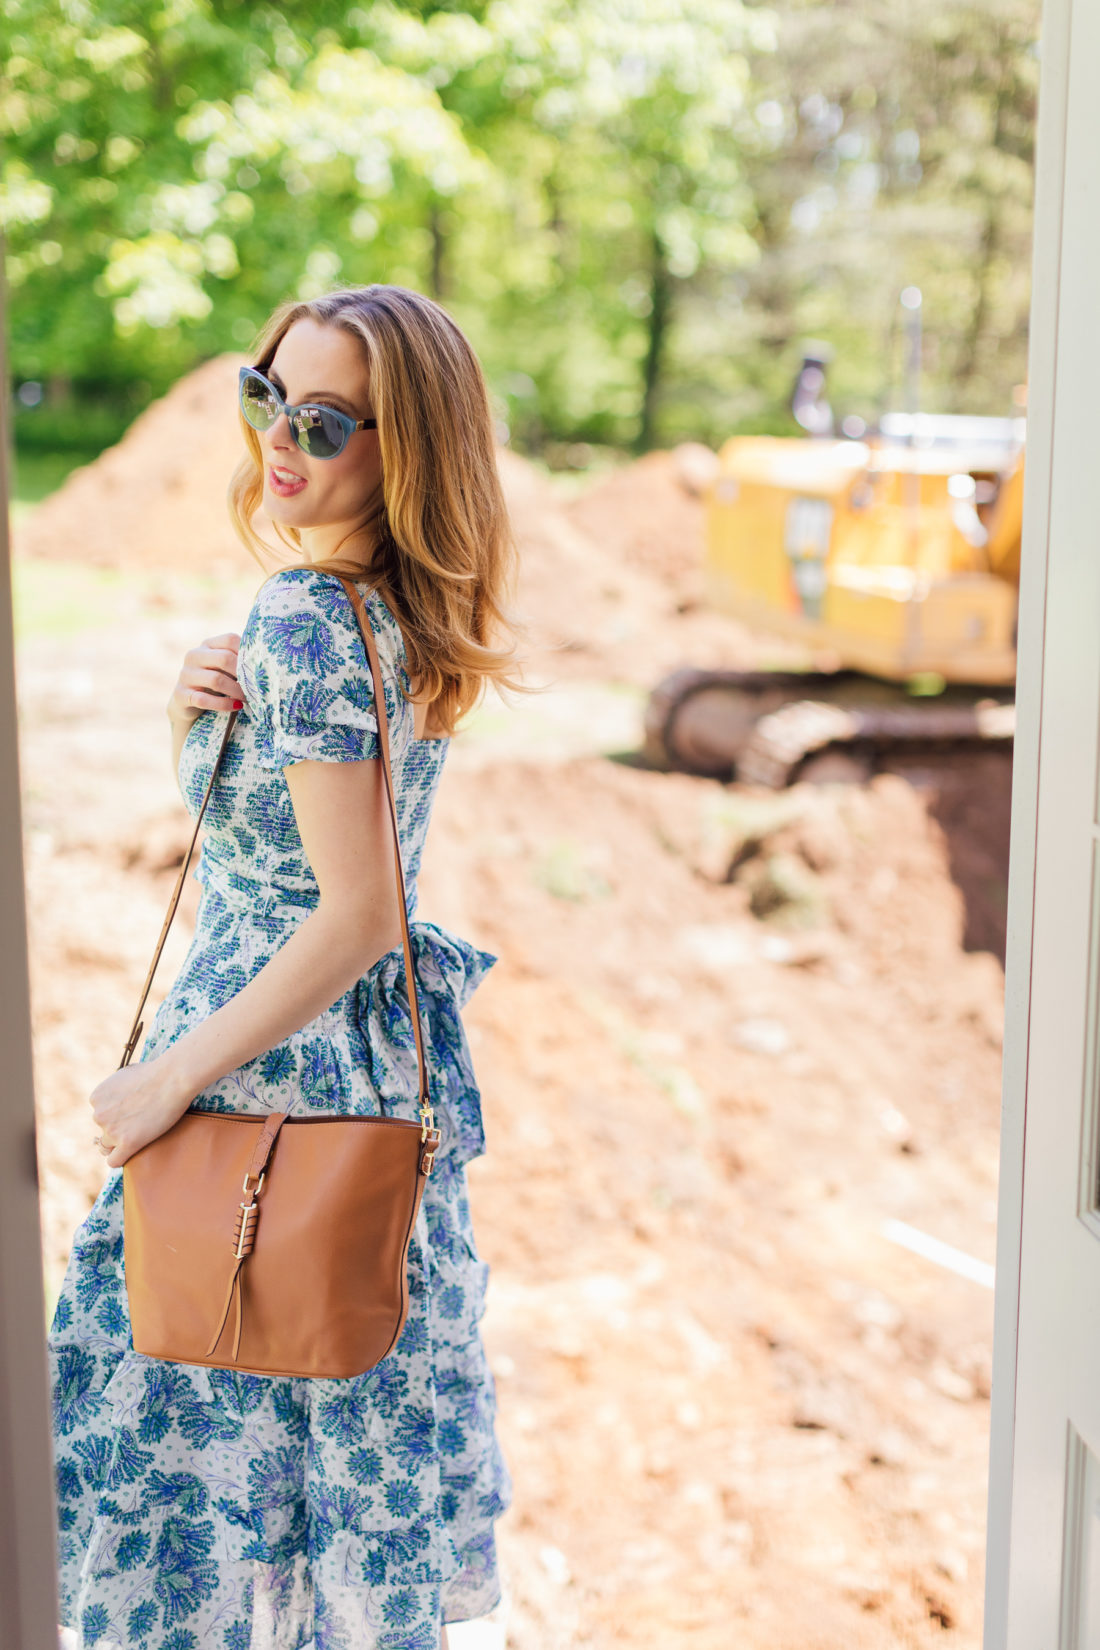 Eva Amurri Martino carries a btown leather bag on her shoulder next to her renovated home